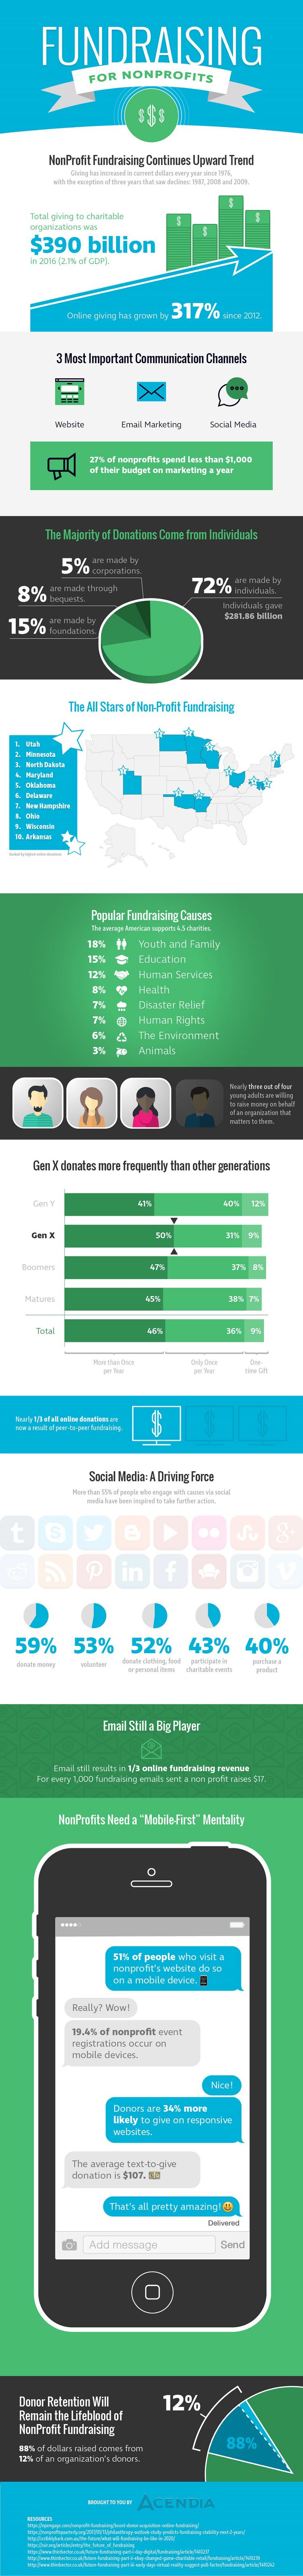 The Future of Fundraising for Nonprofits